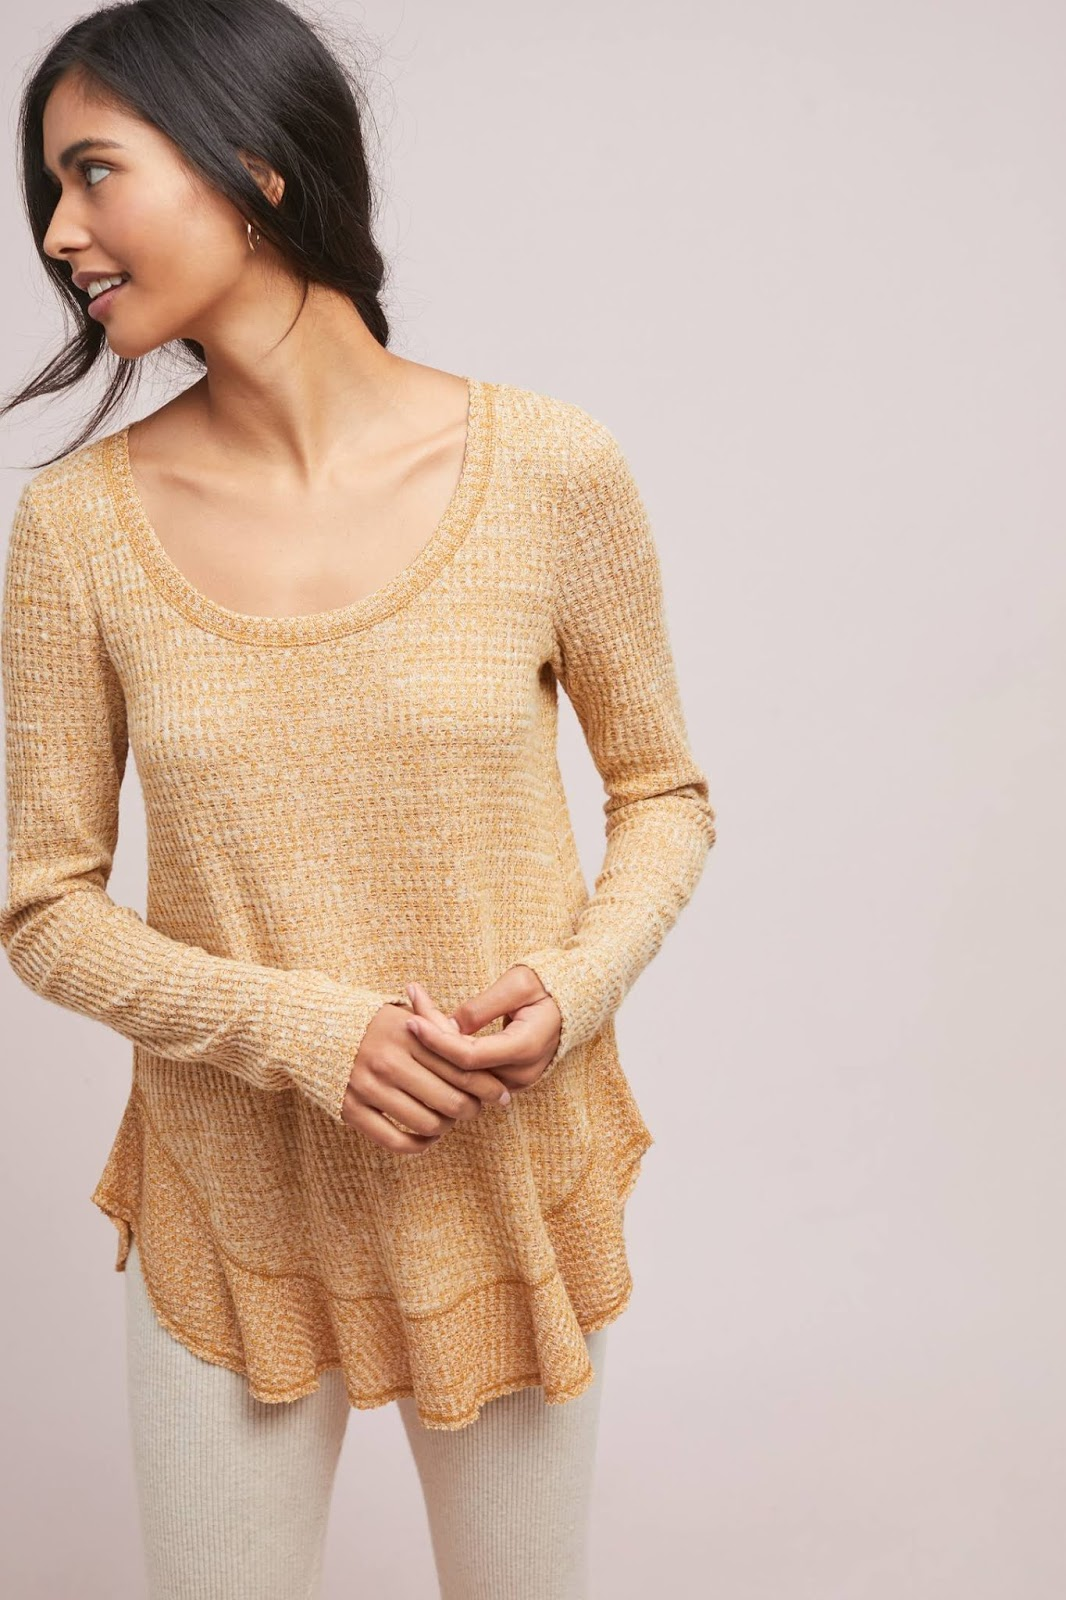 The Anthropologie cozy favorites promo and other promos to shop this weekend :: Effortlessly with Roxy